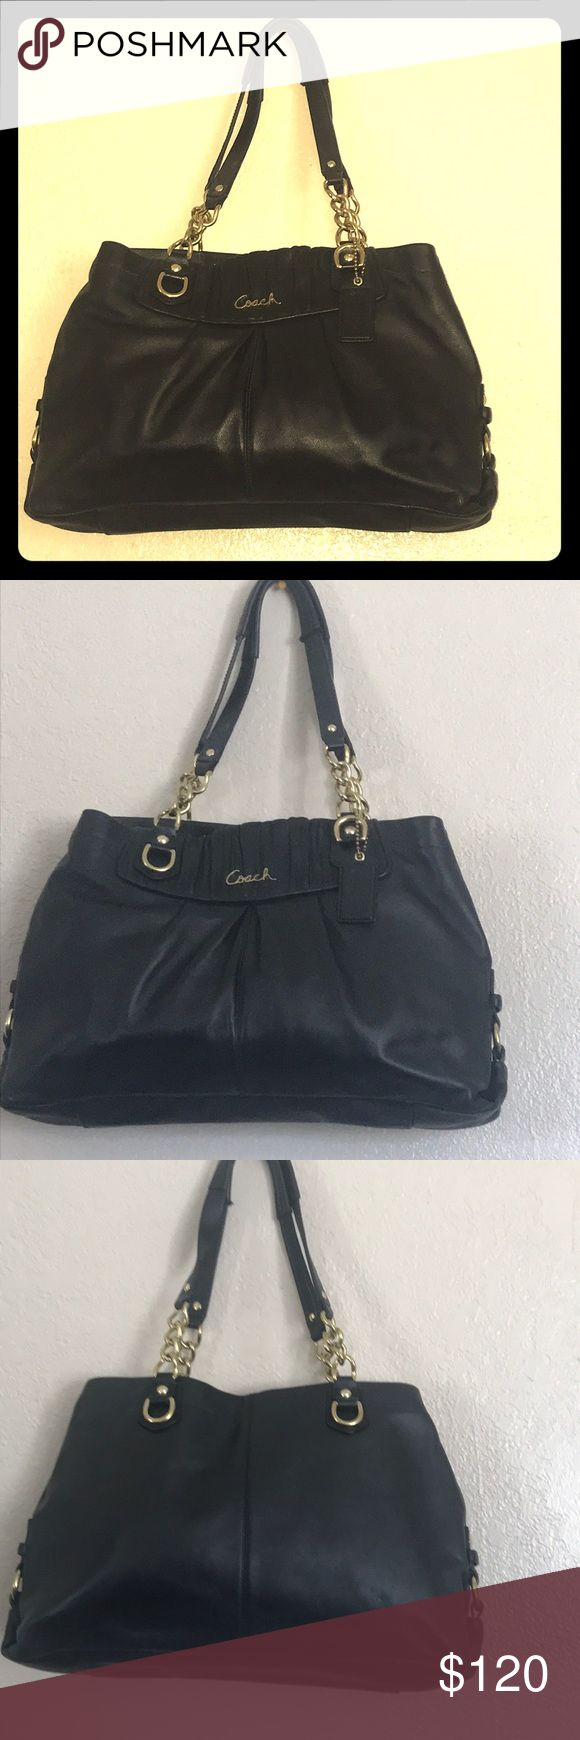 Coach Black Leather Bag Authentic Coach Leather Bag Black Gold Bag  Preowned  Blue inside  Inside divider  Gold Handles  Excellent Condition  Gently use Coach Bags Satchels